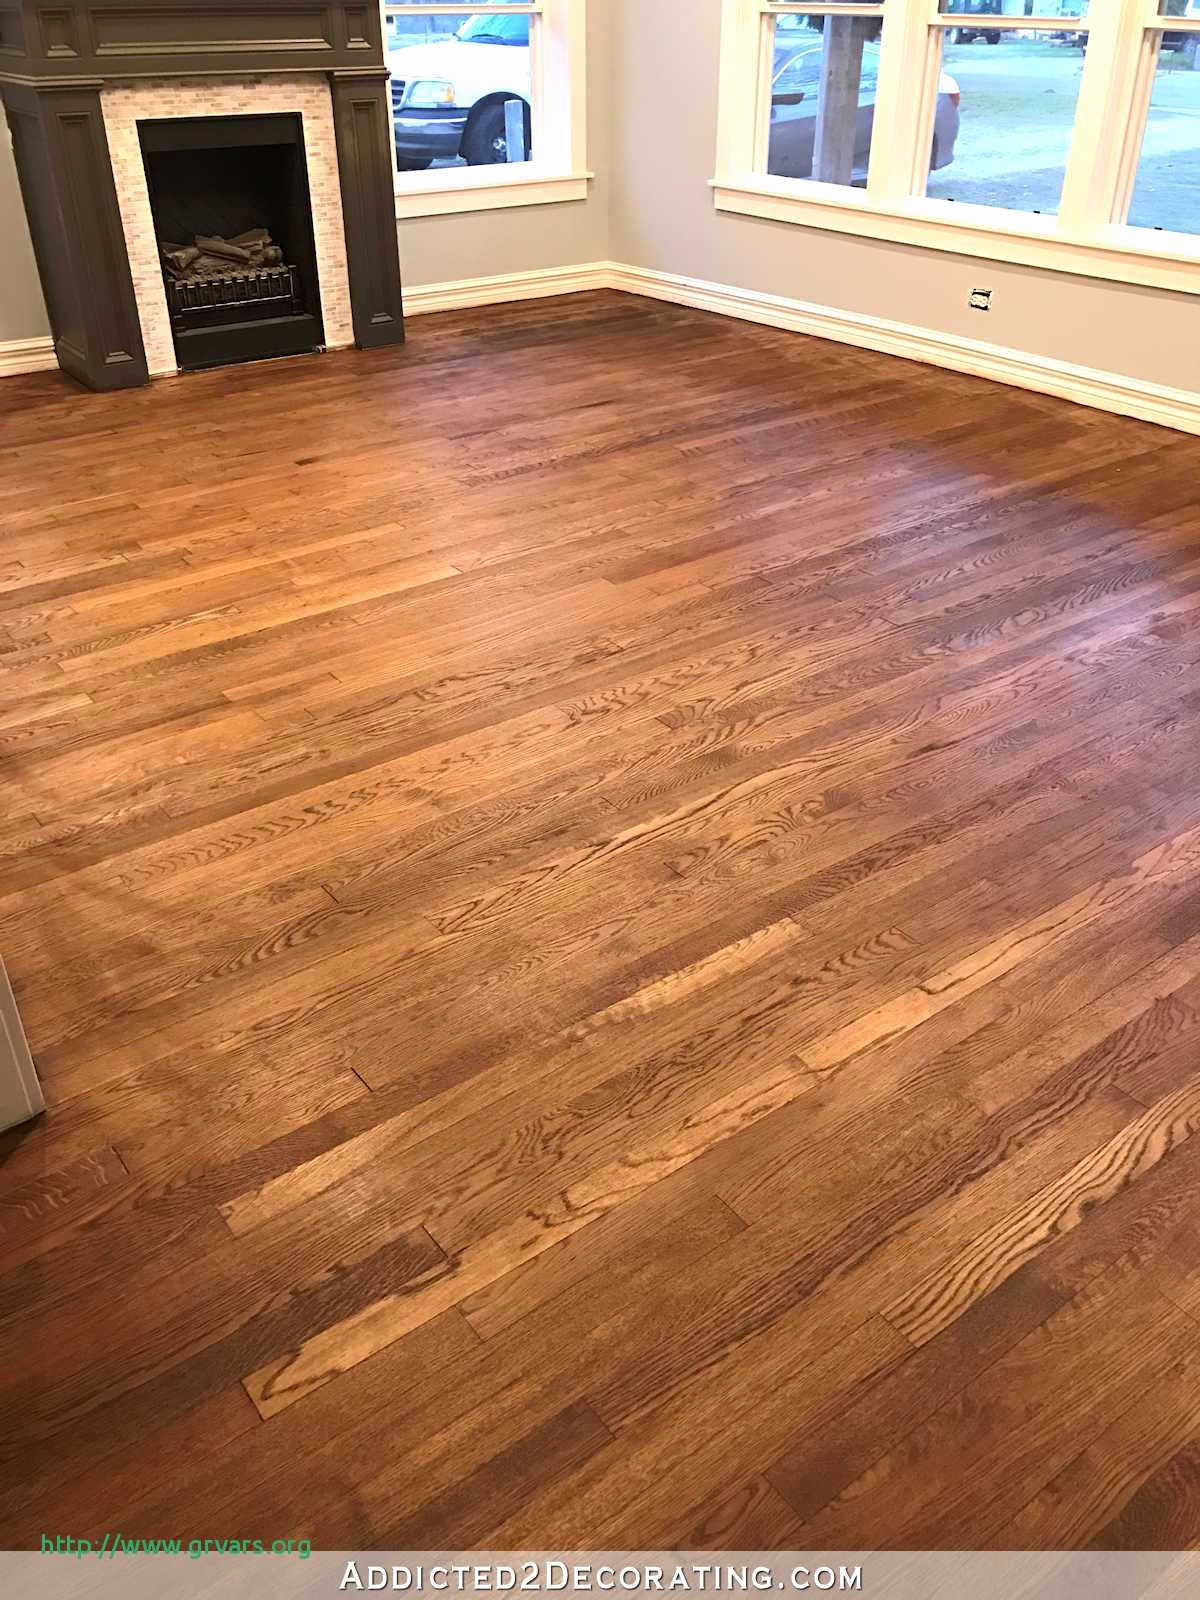 hardwood flooring cost of 60 elegant the best of stained concrete floor cost calculator for staining red oak hardwood floors 8a living room and entryway